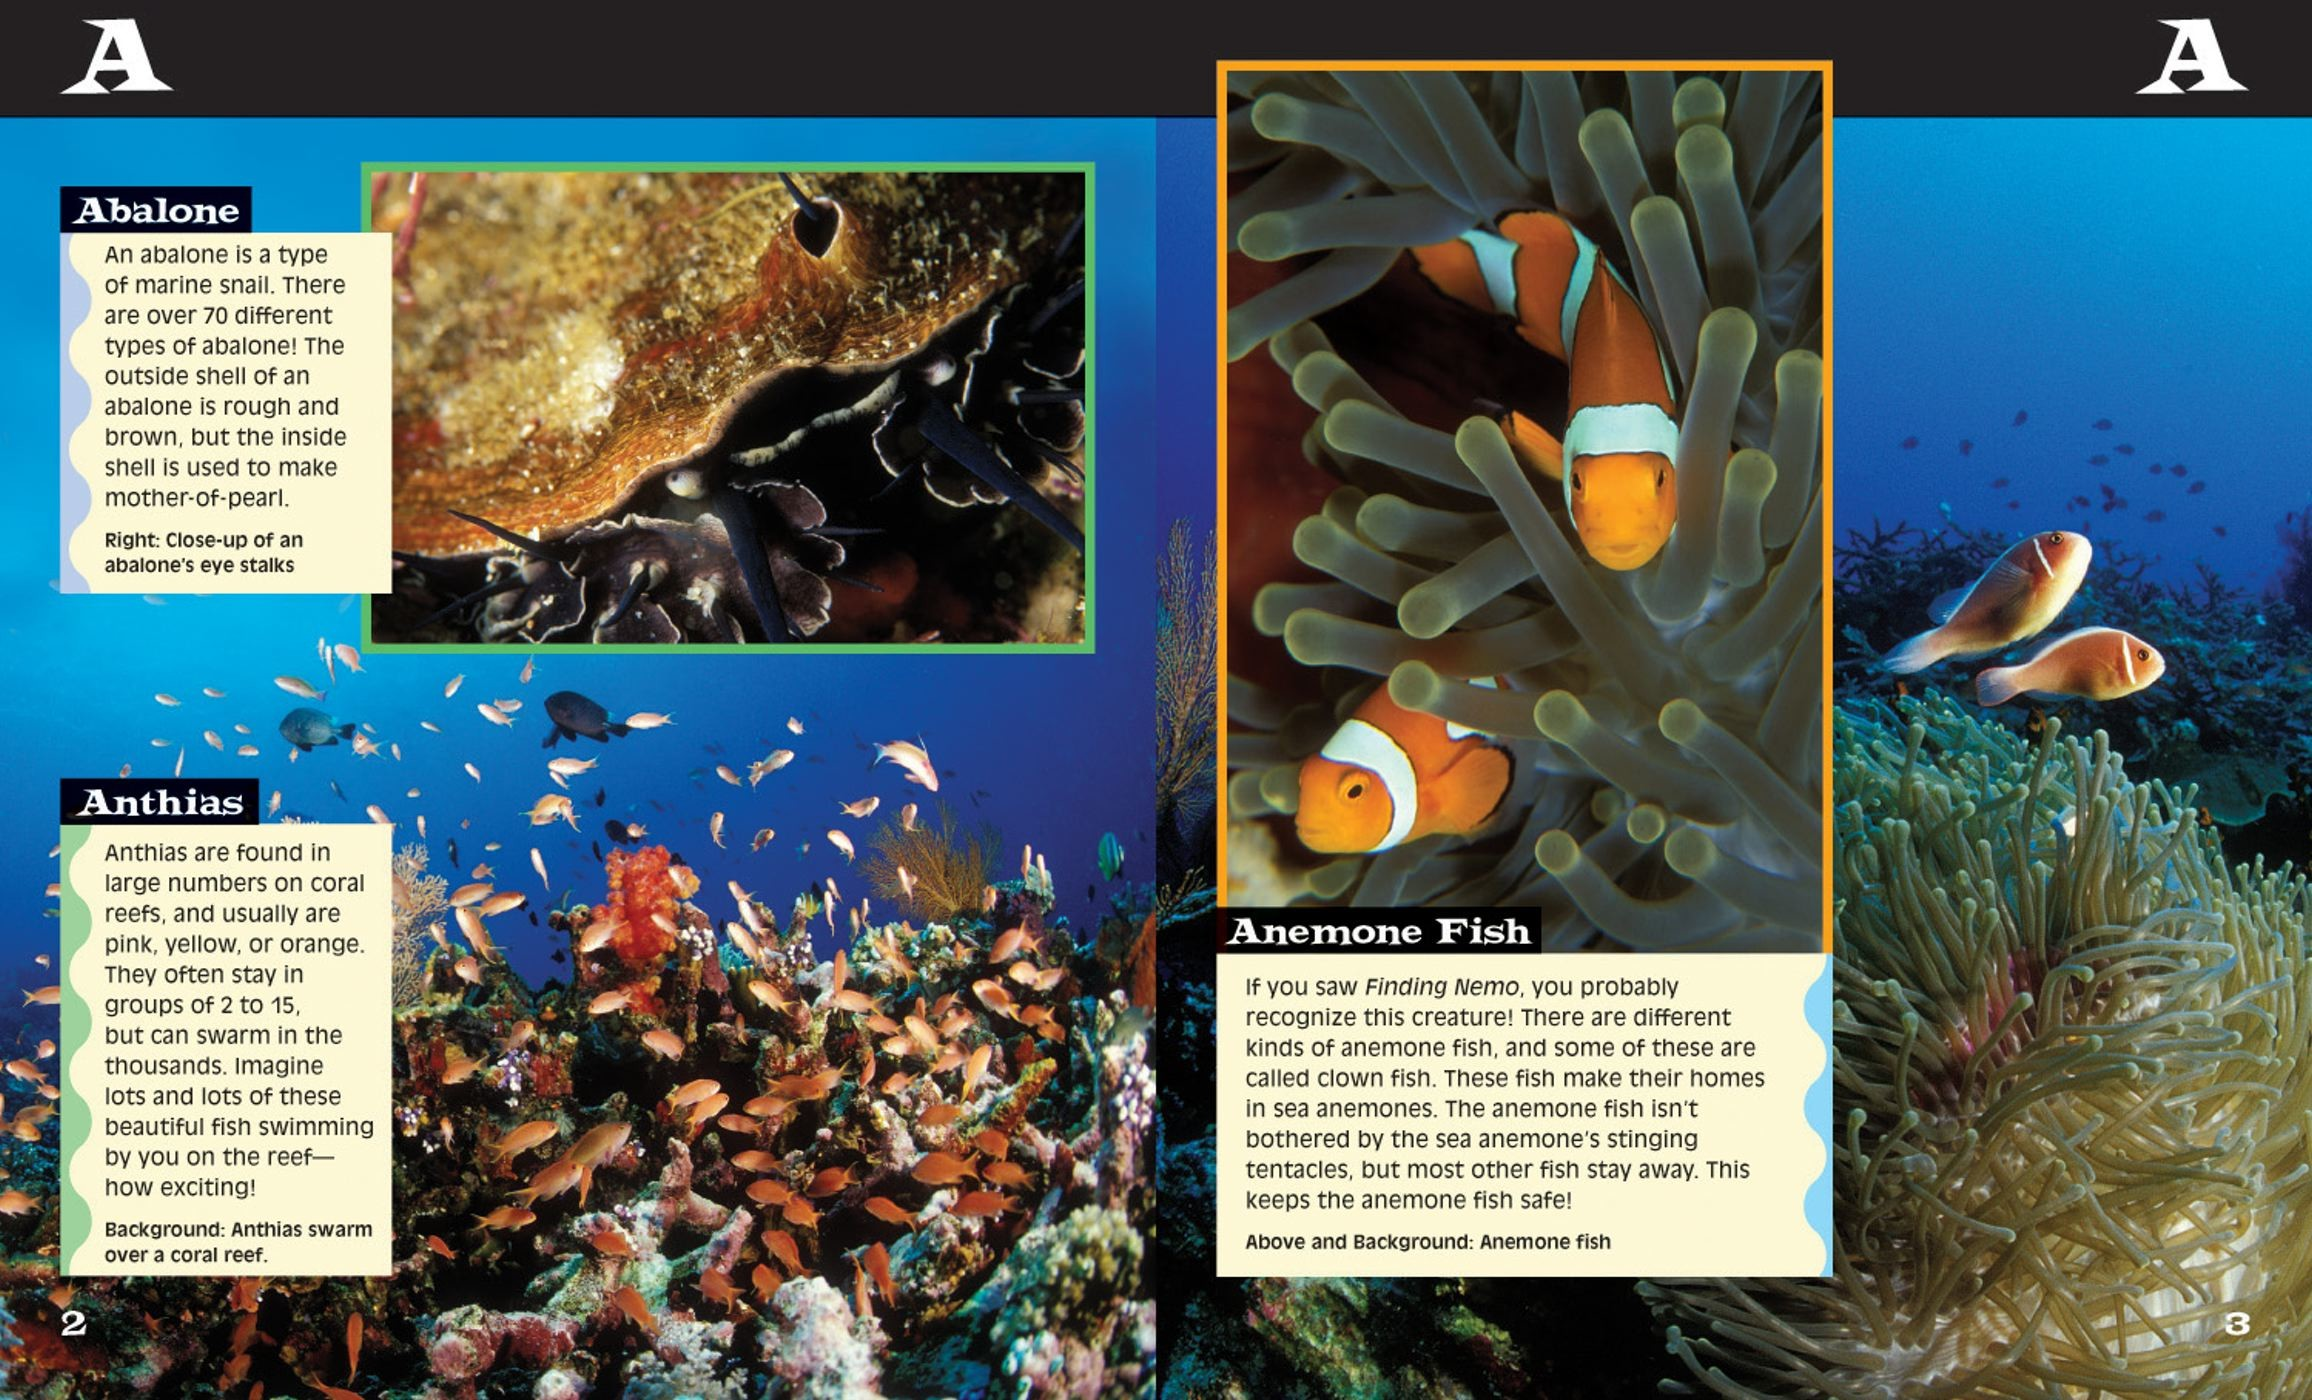 Ocean-life-from-a-to-z-book-and-dvd-9780794412227.in01